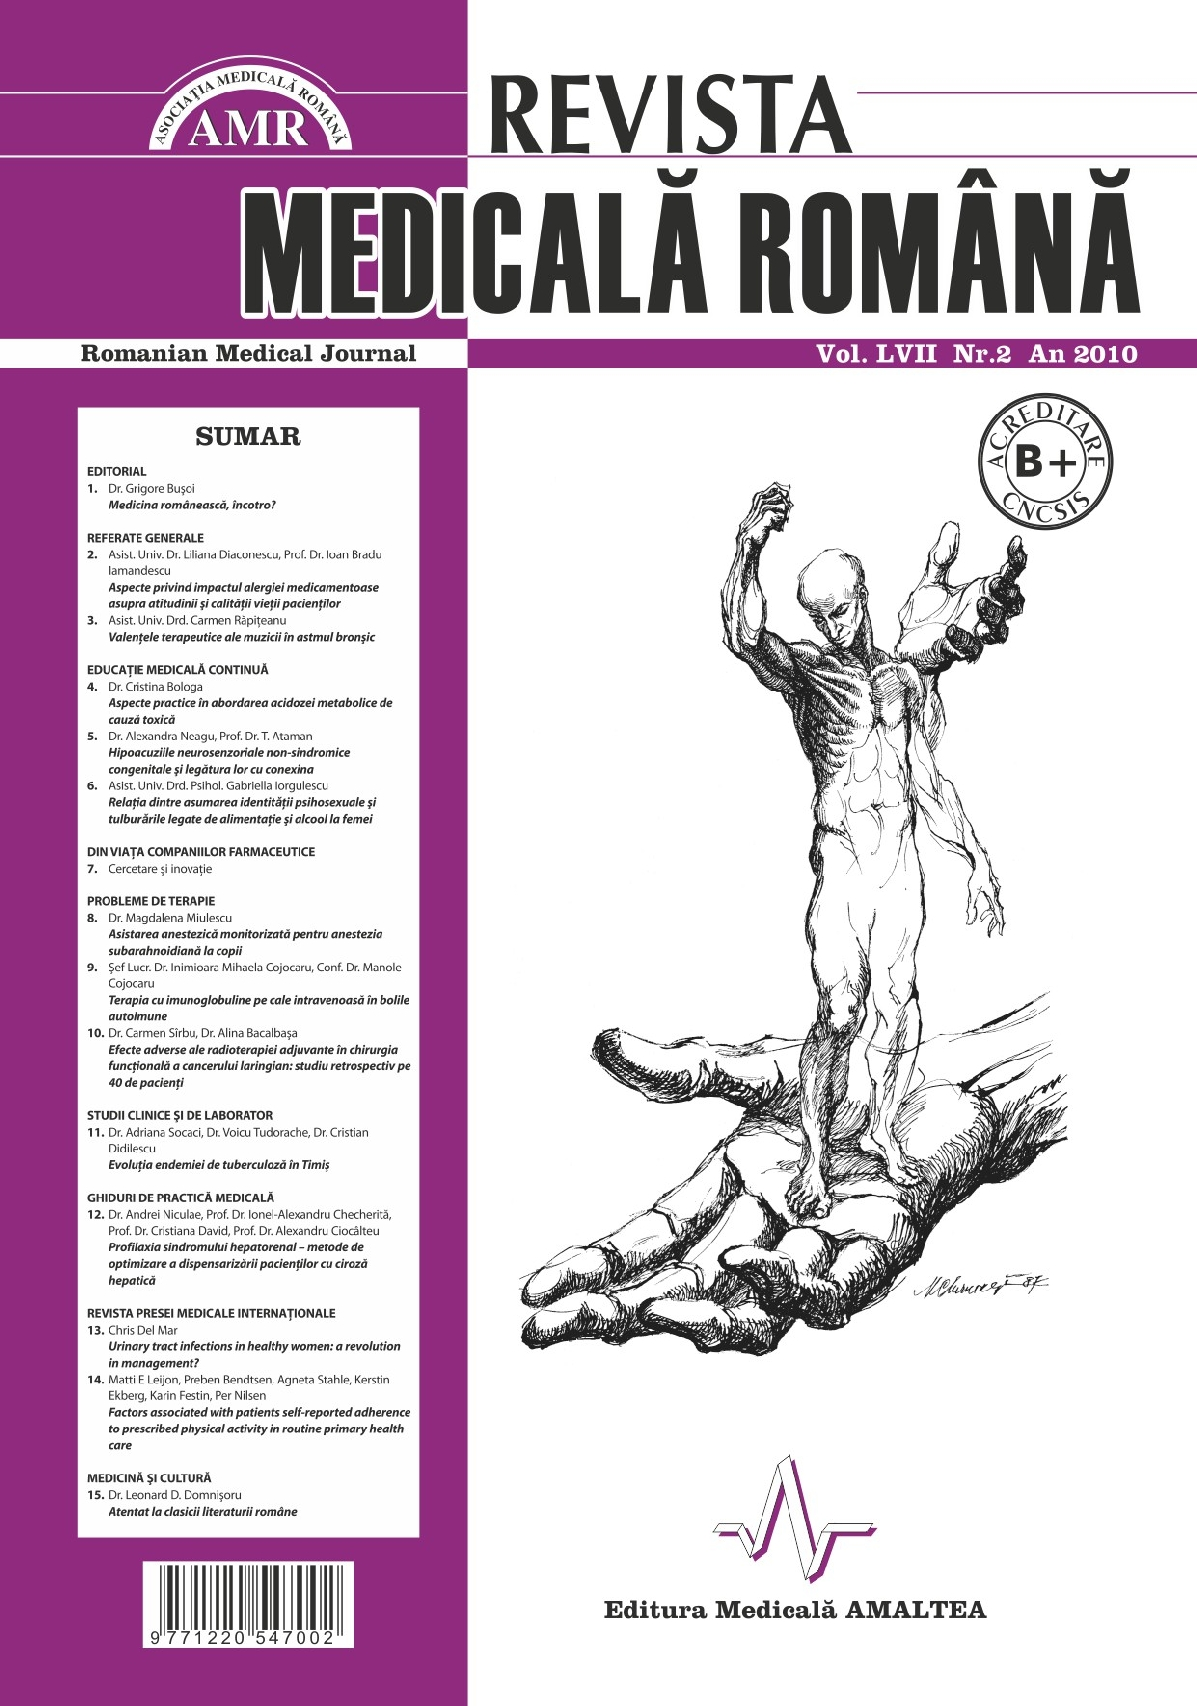 REVISTA MEDICALA ROMANA - Romanian Medical Journal, Vol. LVII, No. 2, Year 2010